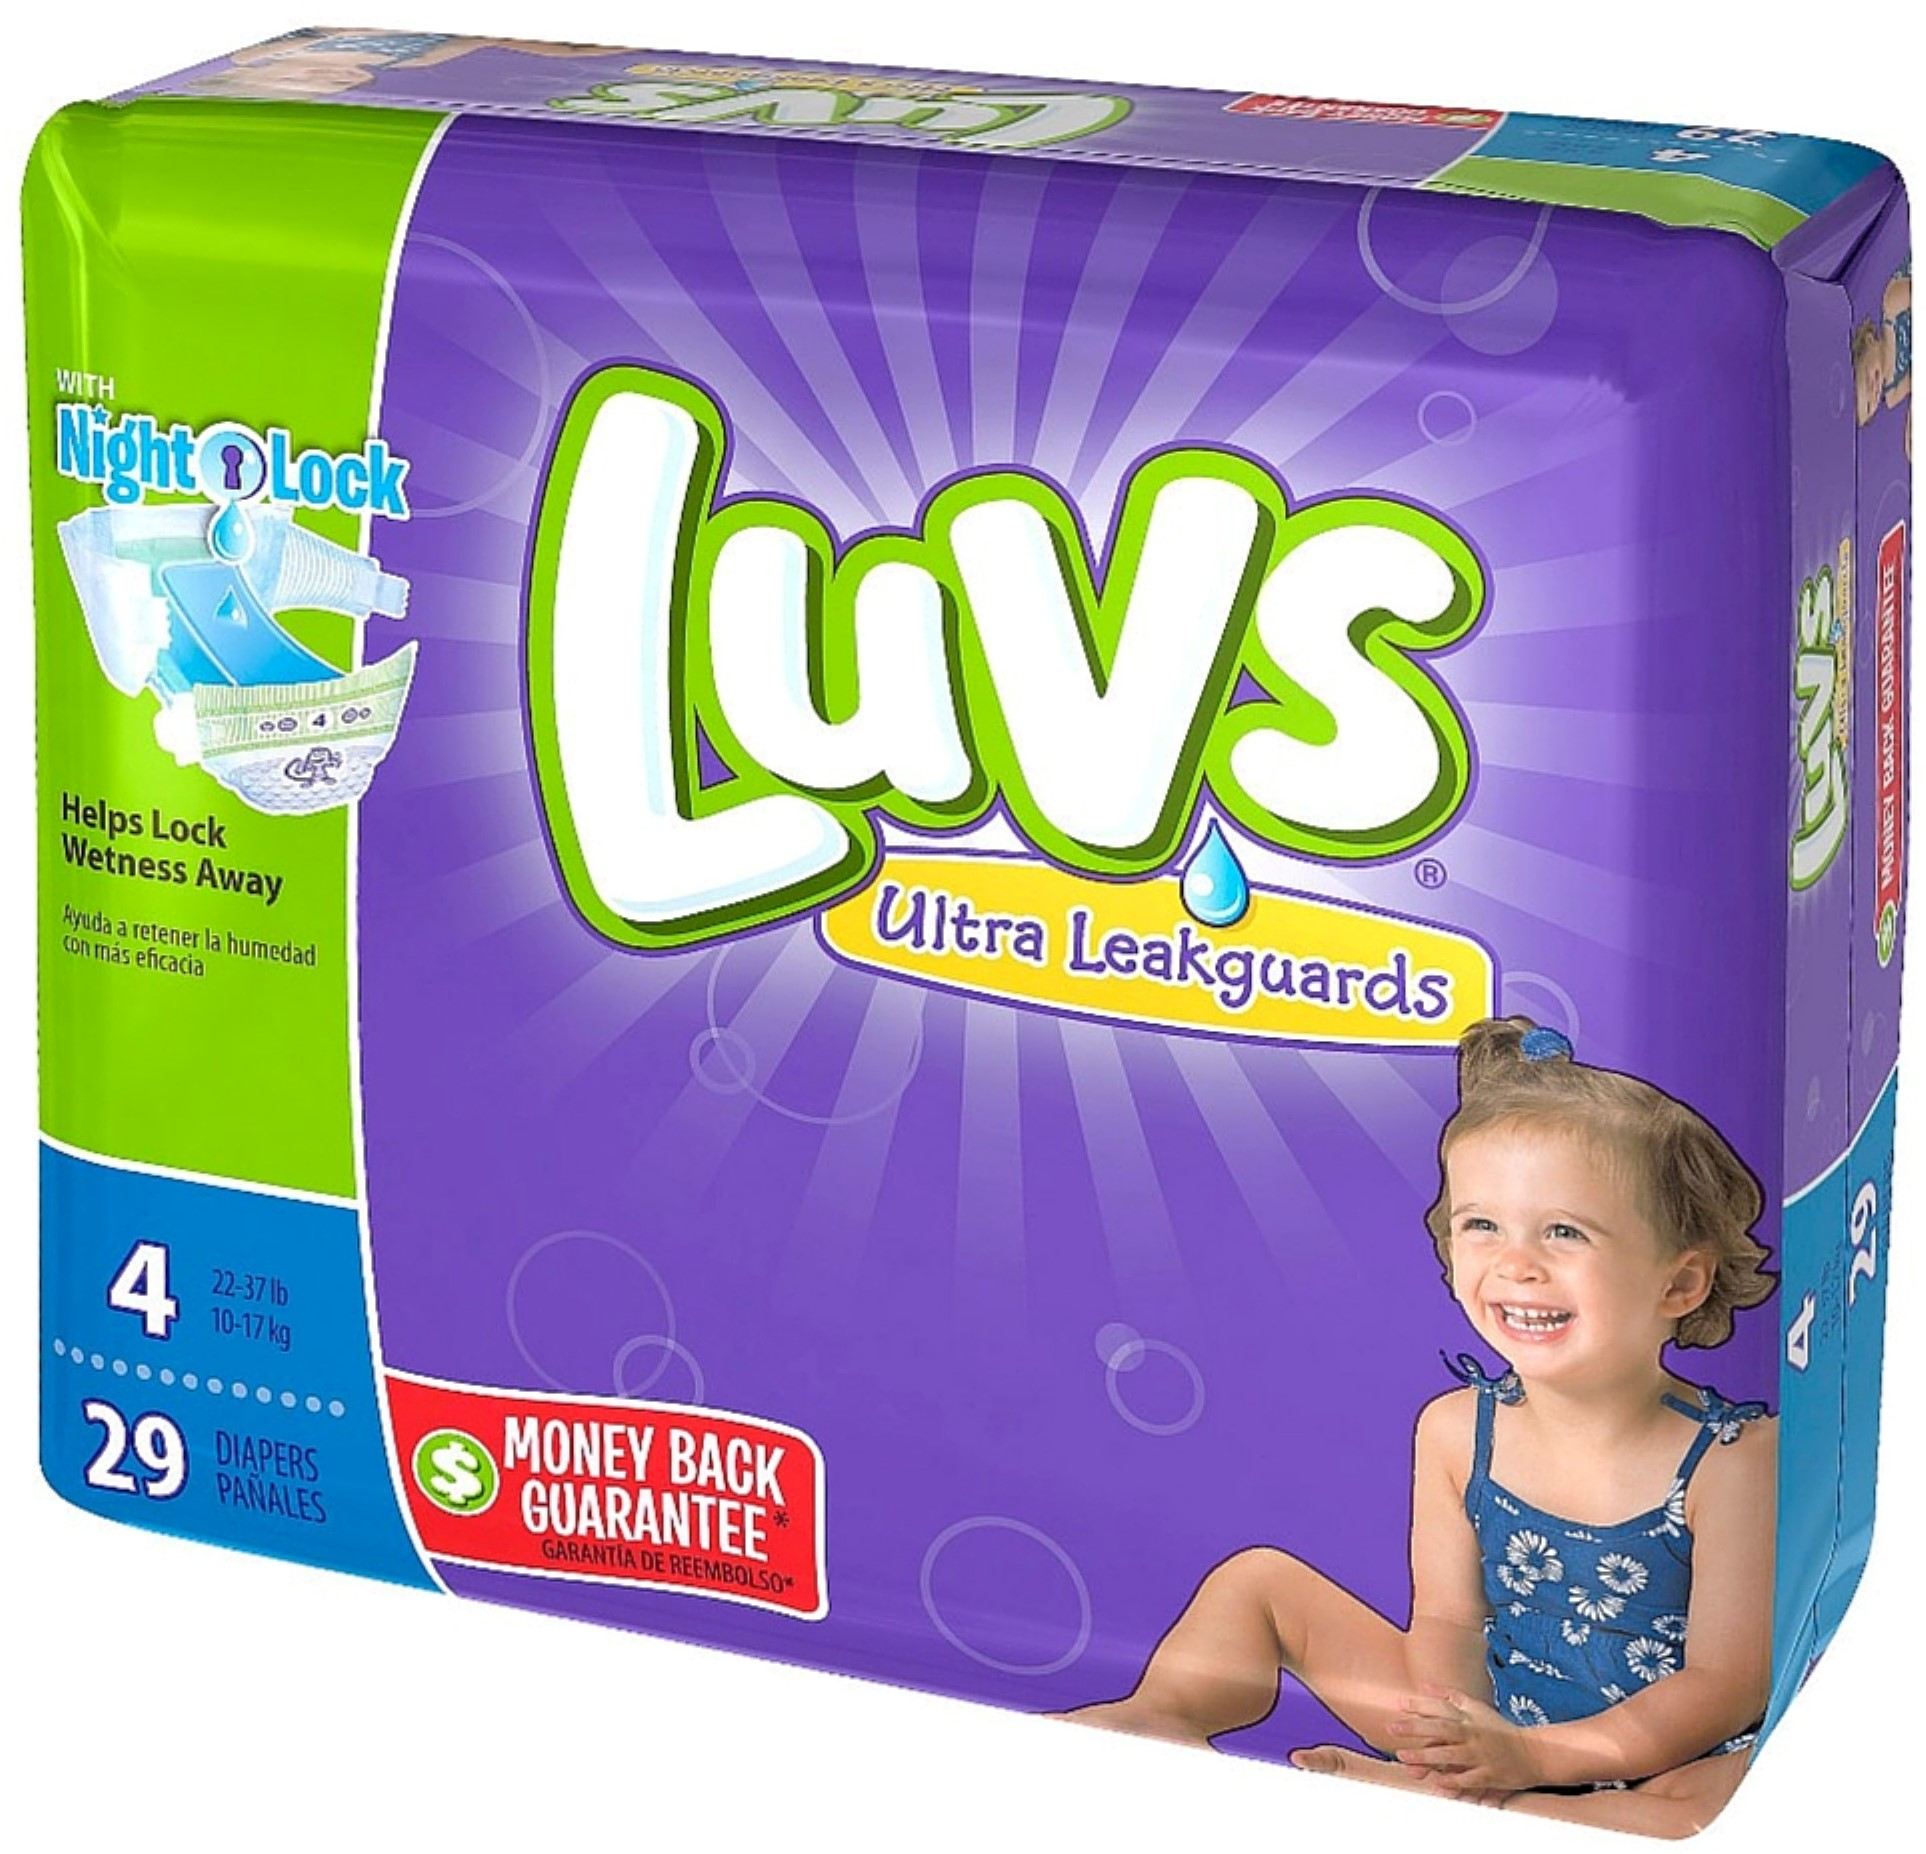 Luvs Ultra Leakguards Diapers with Night Lock, Size 4 29 ...